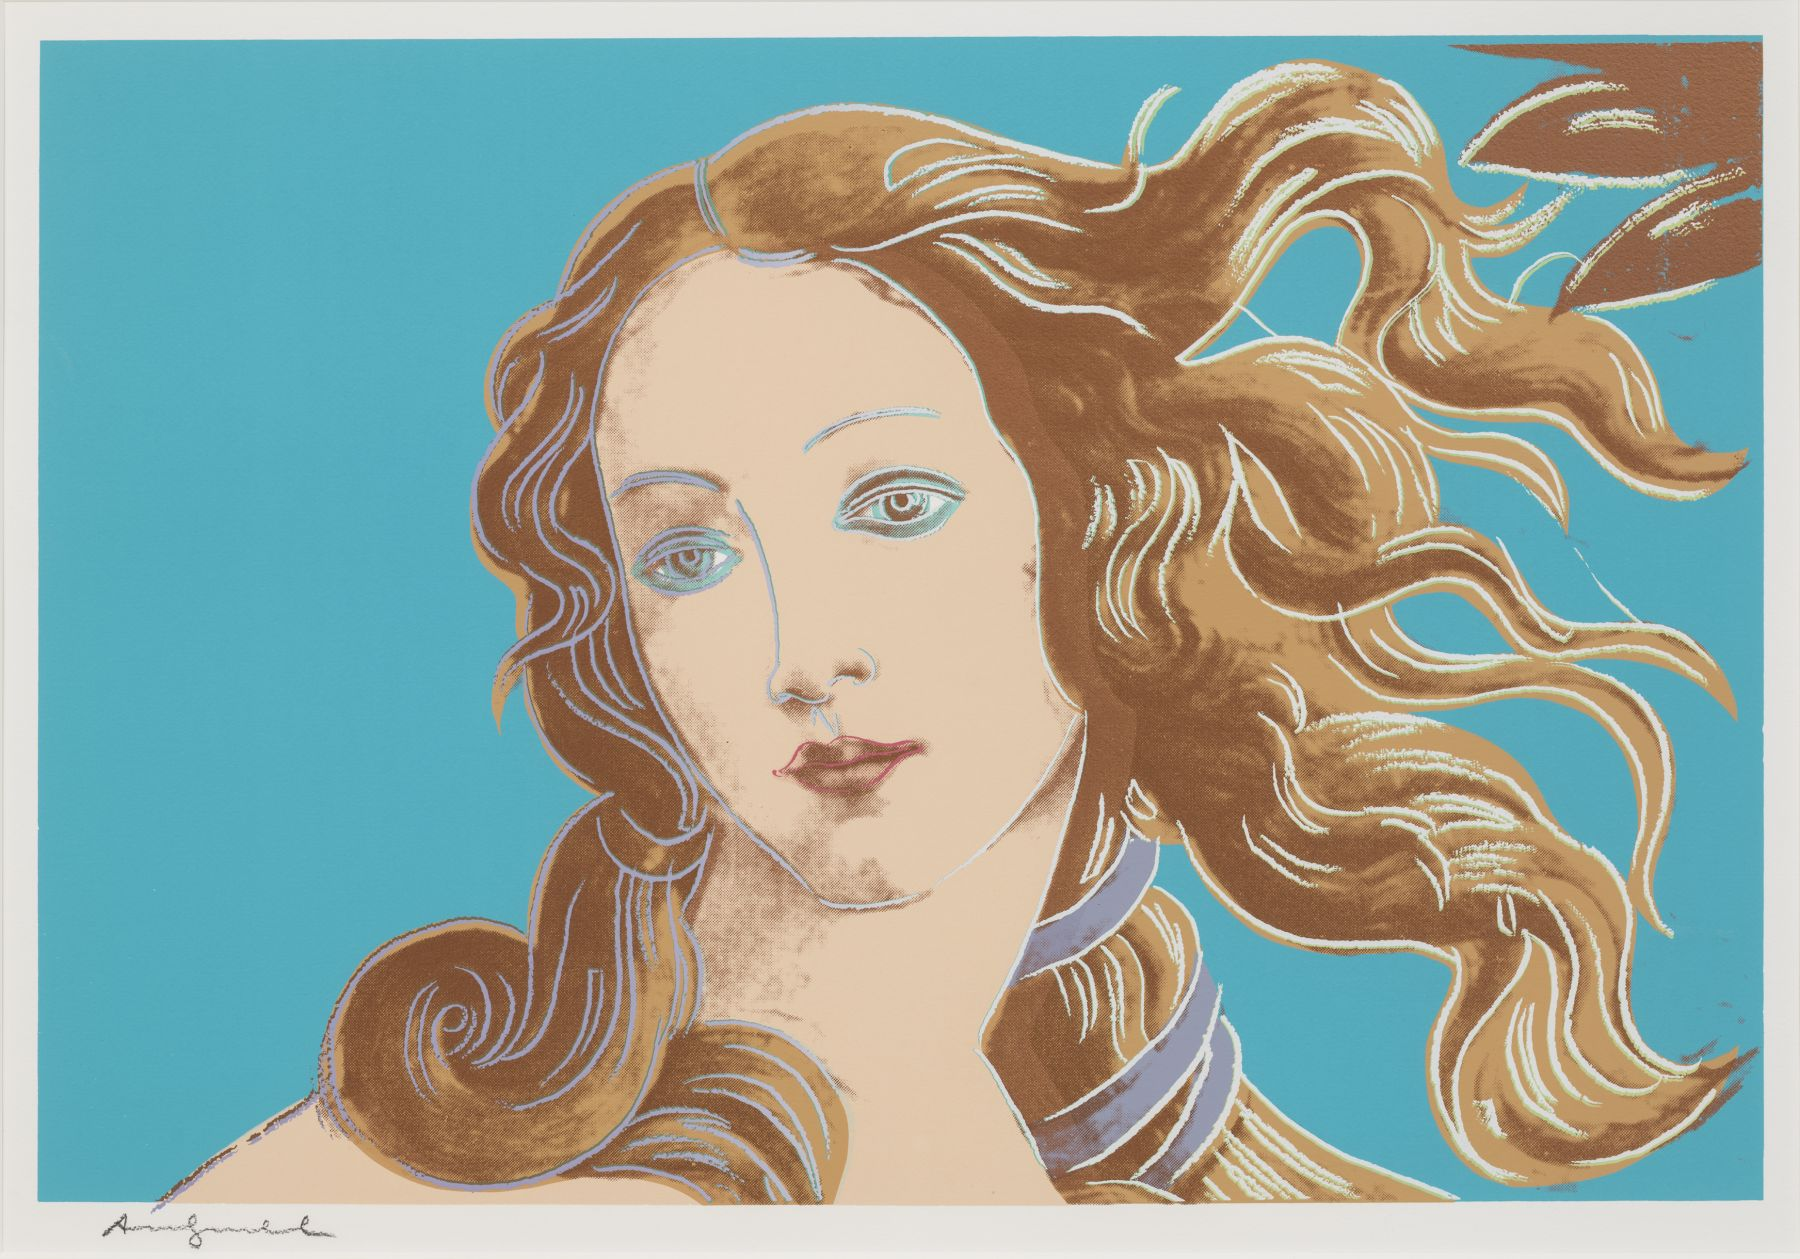 Details of Renaissance paintings (Sandro Botticelli, Birth of Venus, 1482) by Andy Warhol